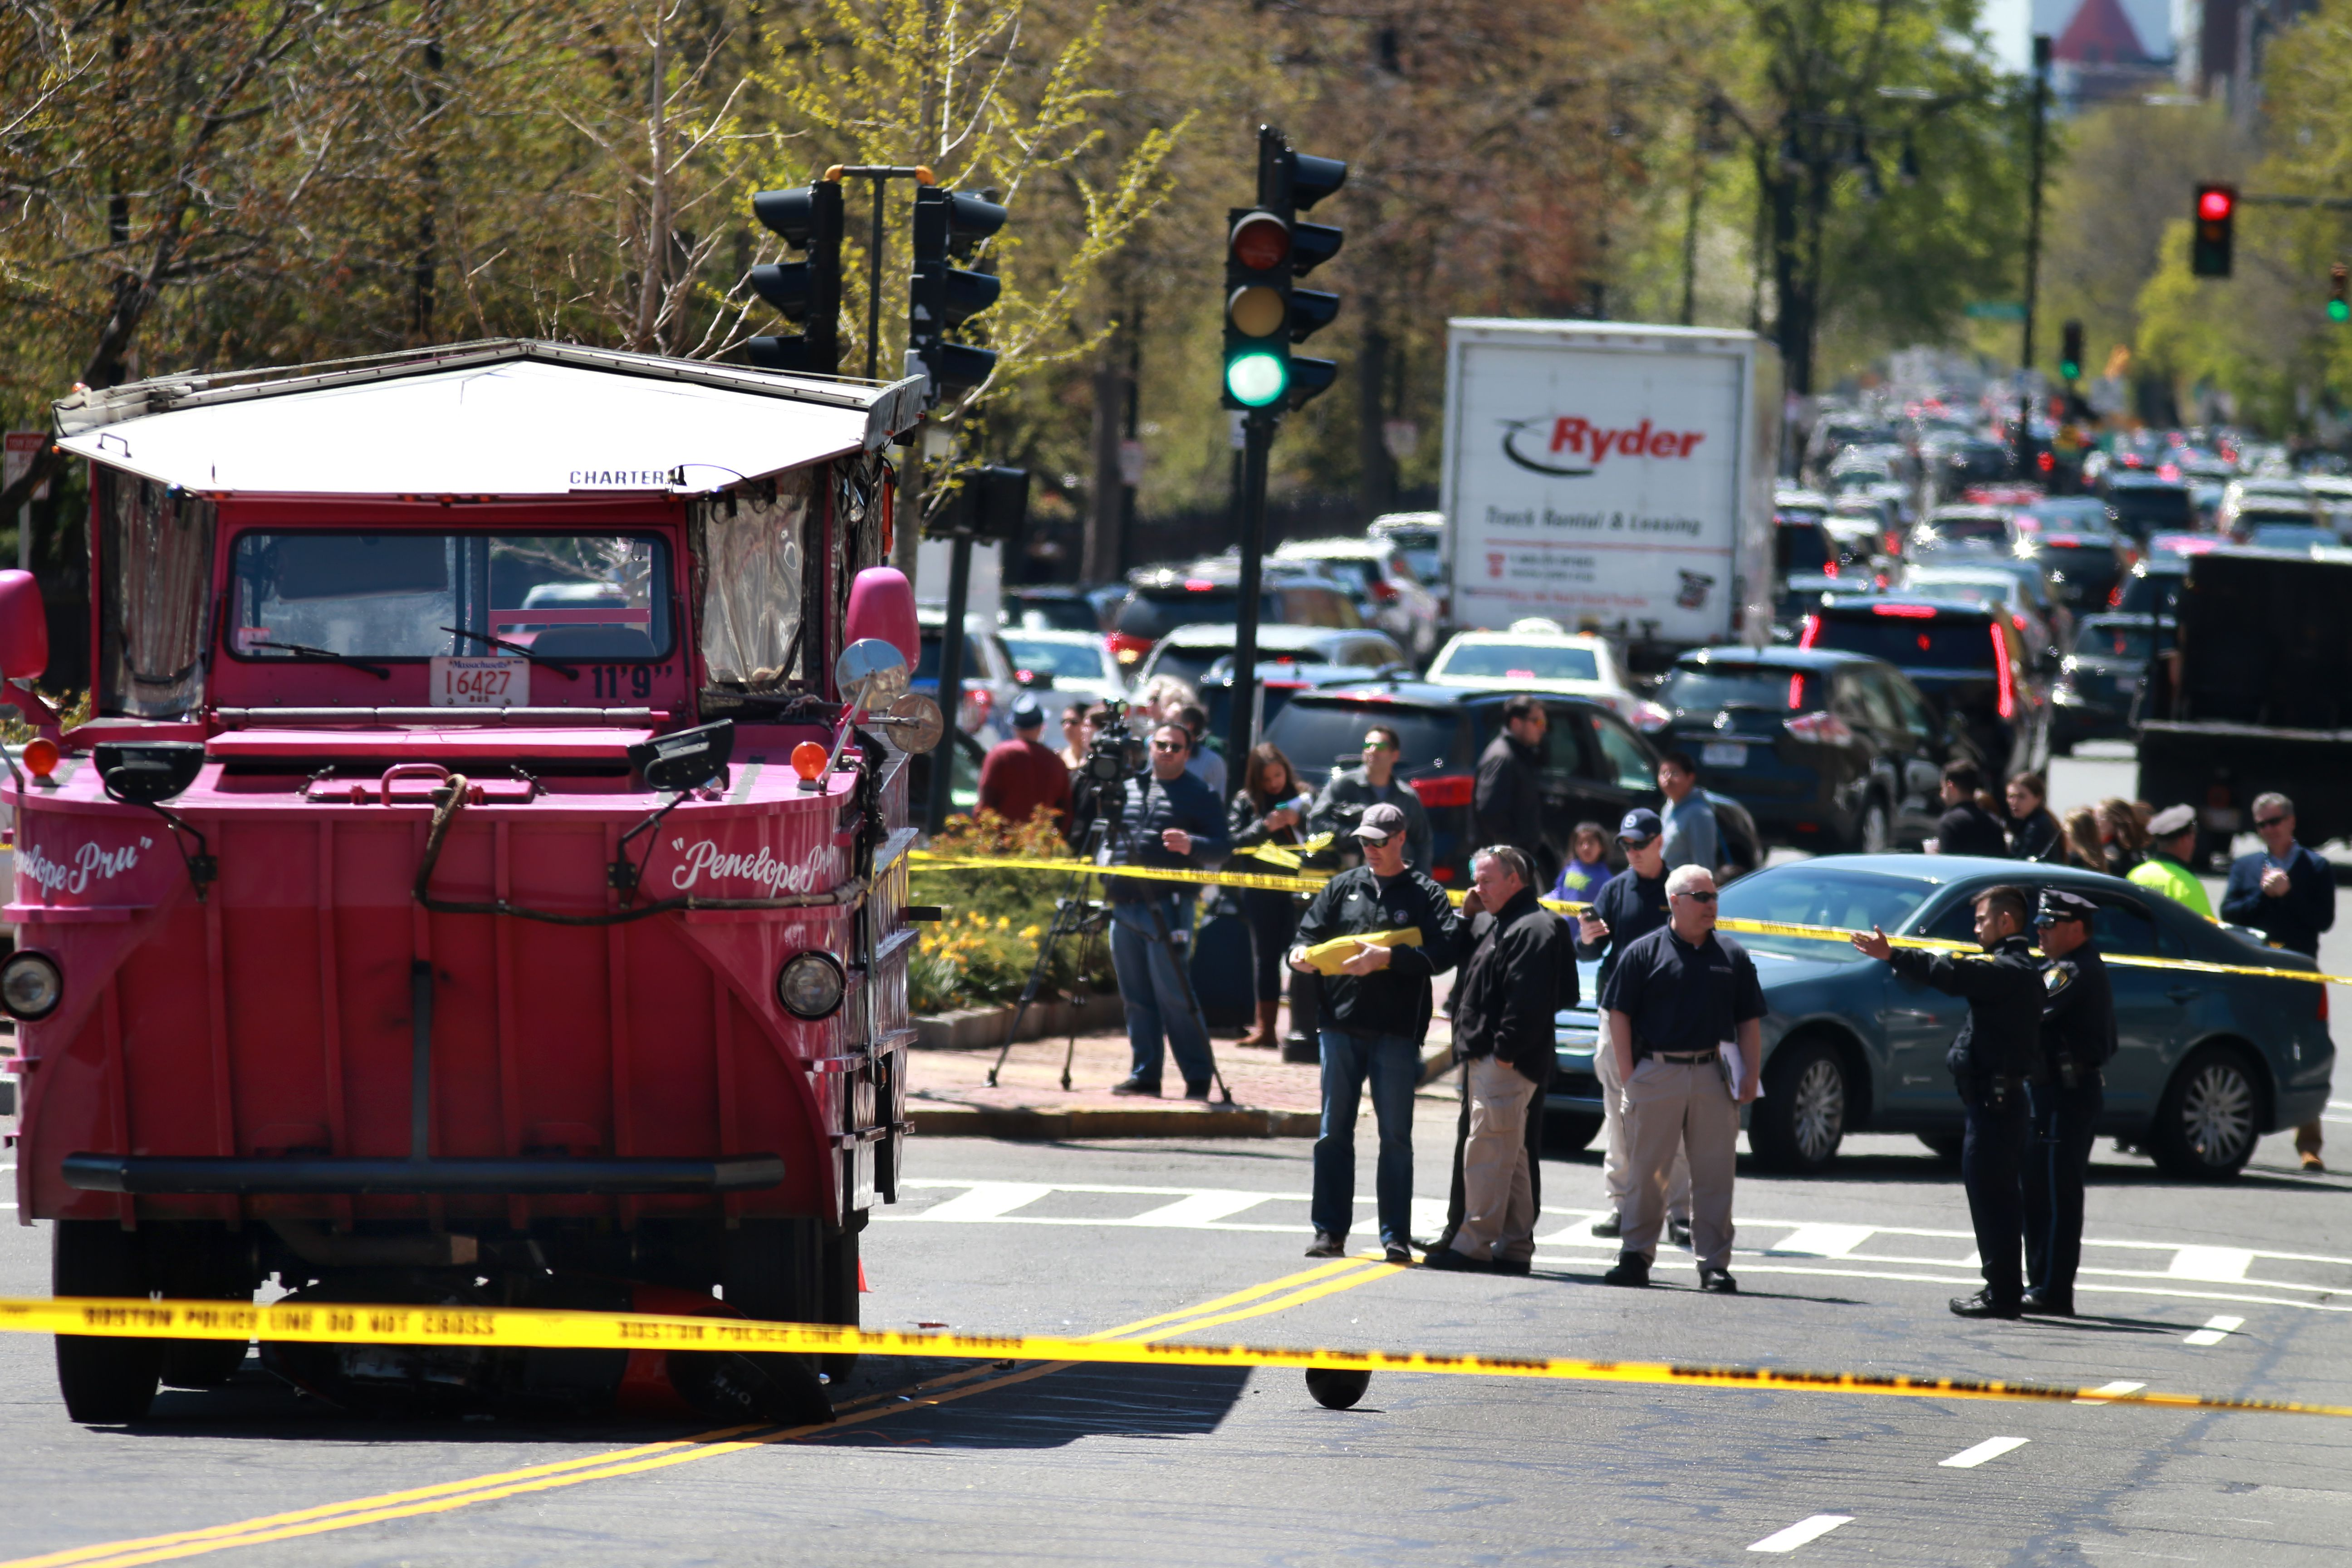 Woman driving scooter dies after being struck by duck boat - The